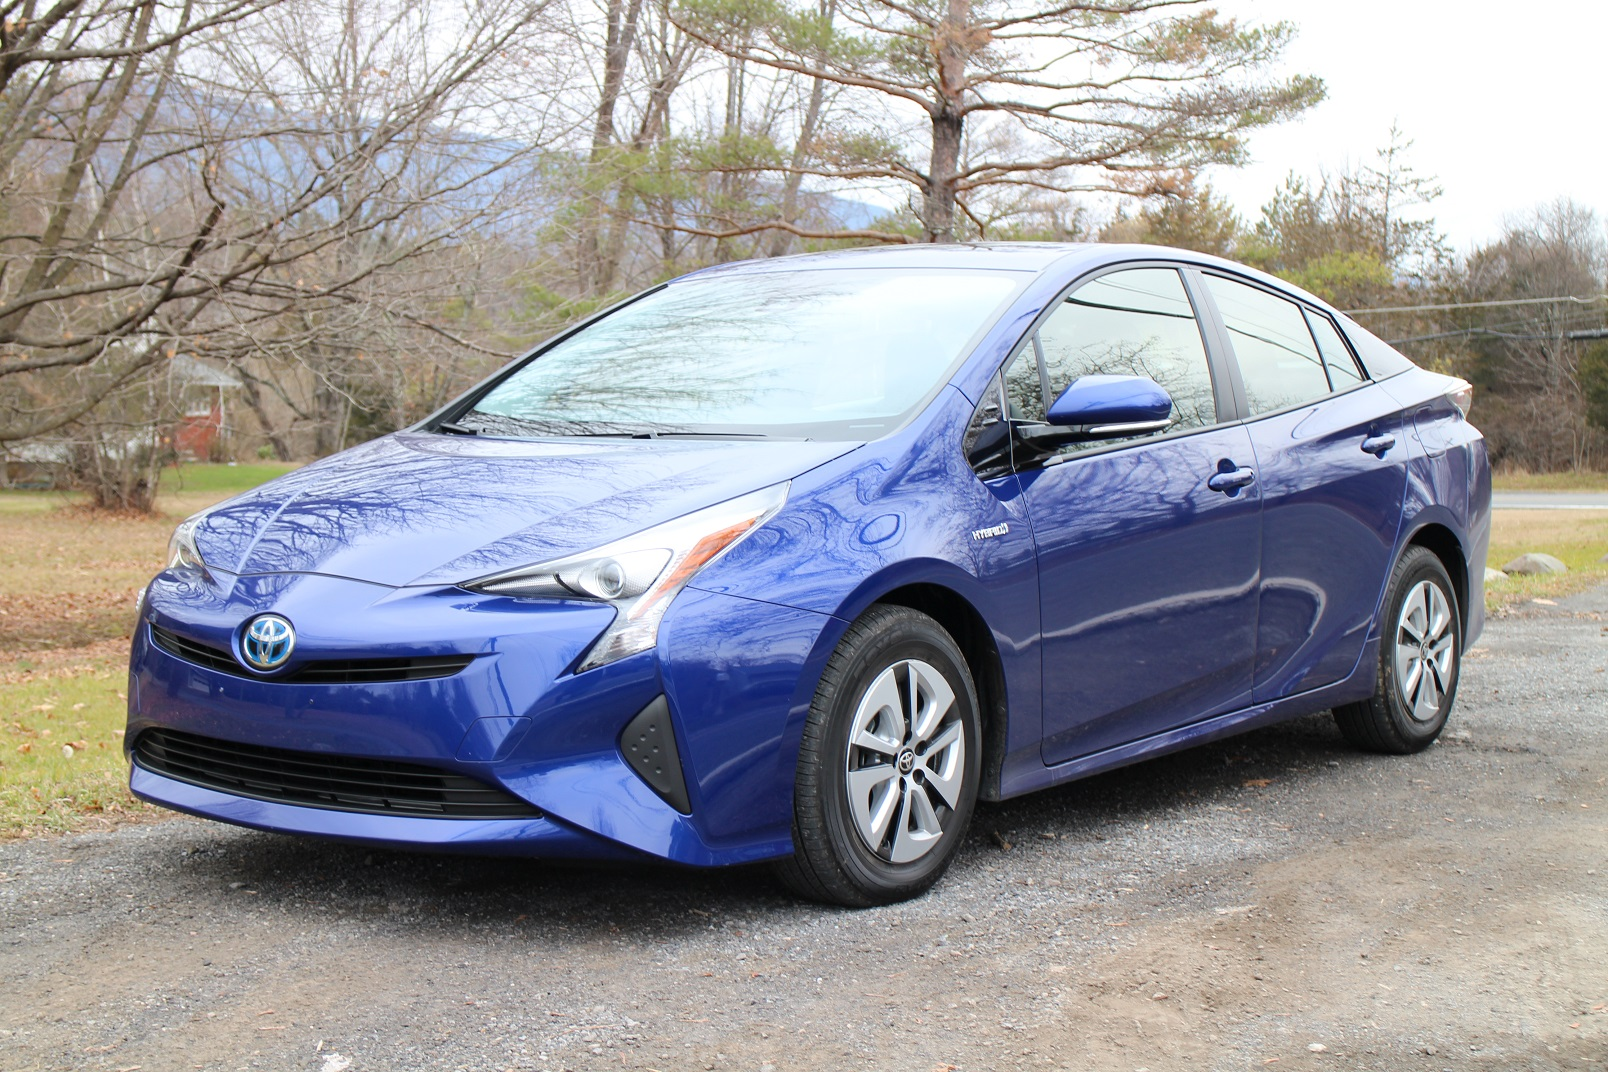 Merveilleux The Prius Plus Four Is Toyotau0027s Big Green Middle Finger To The Haters |  GearOpen